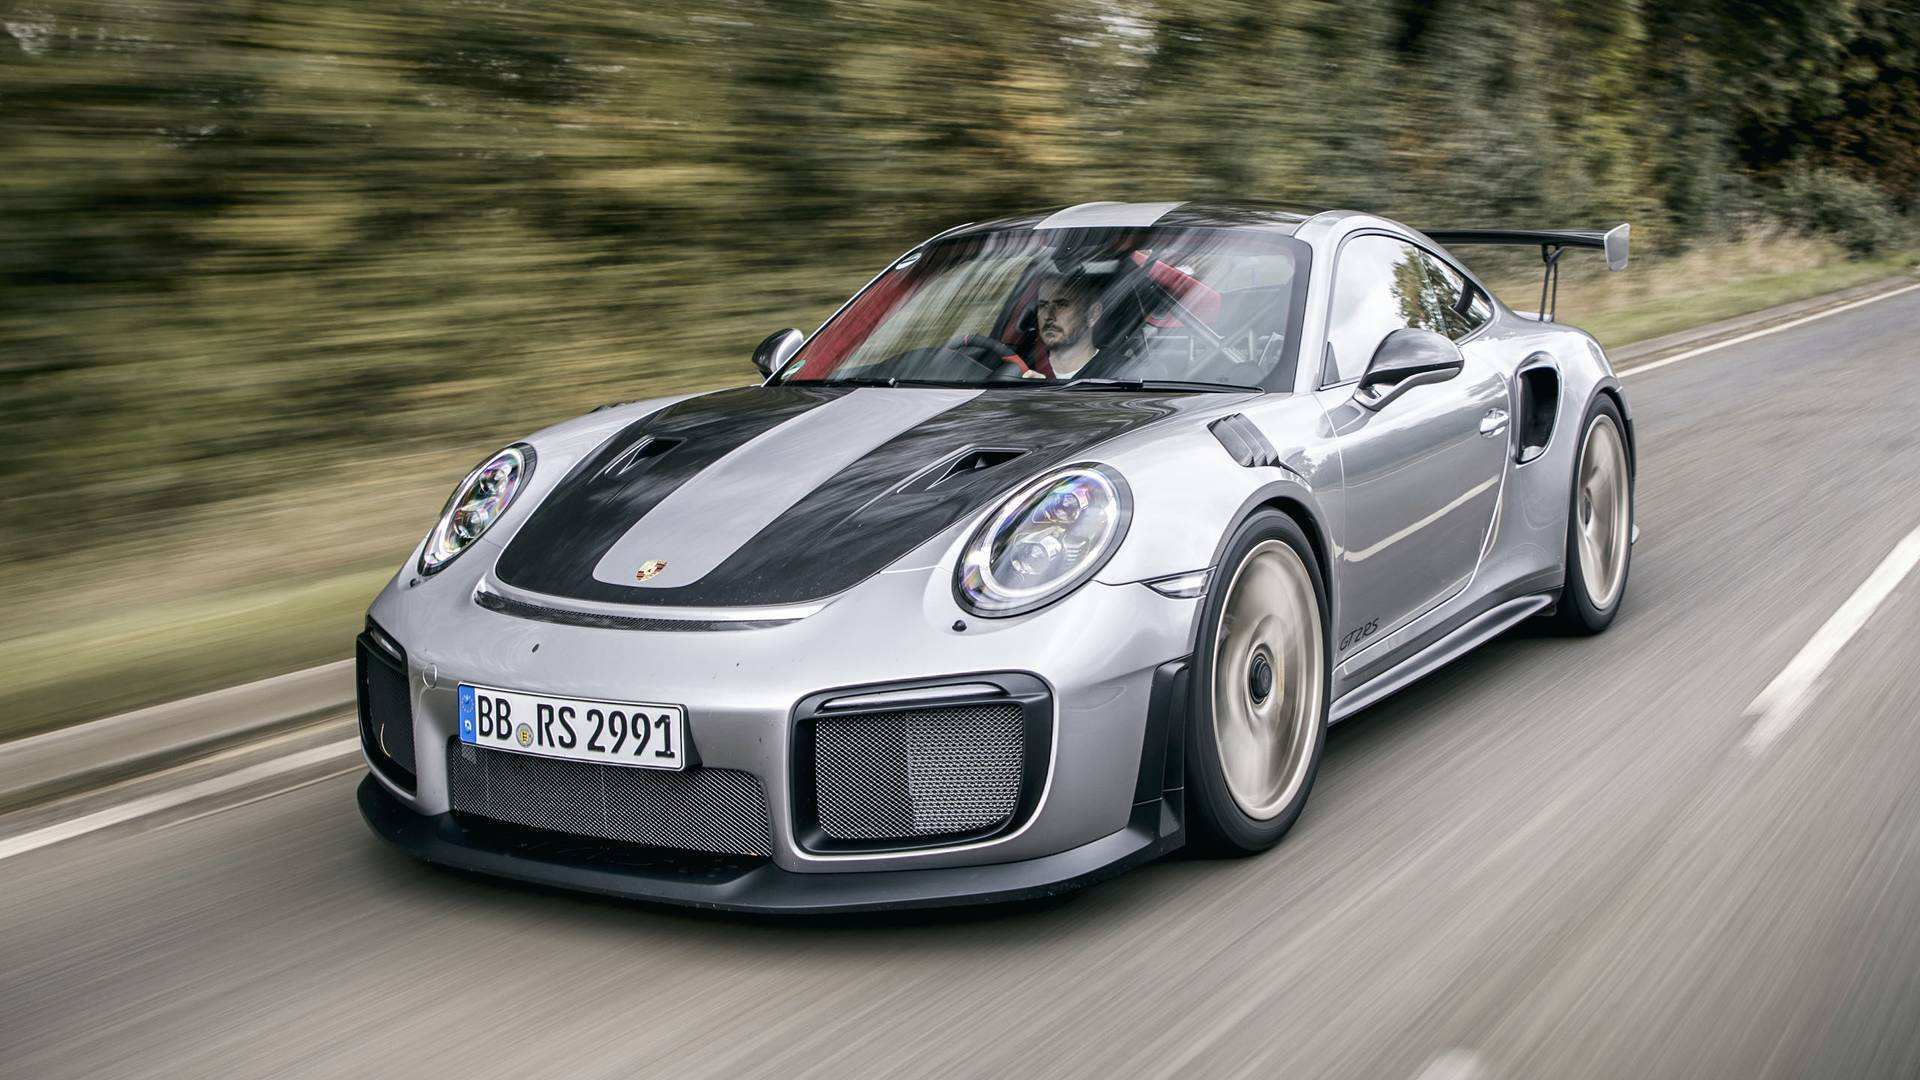 35 A 2019 Porsche Gt2 Rs For Sale New Model And Performance